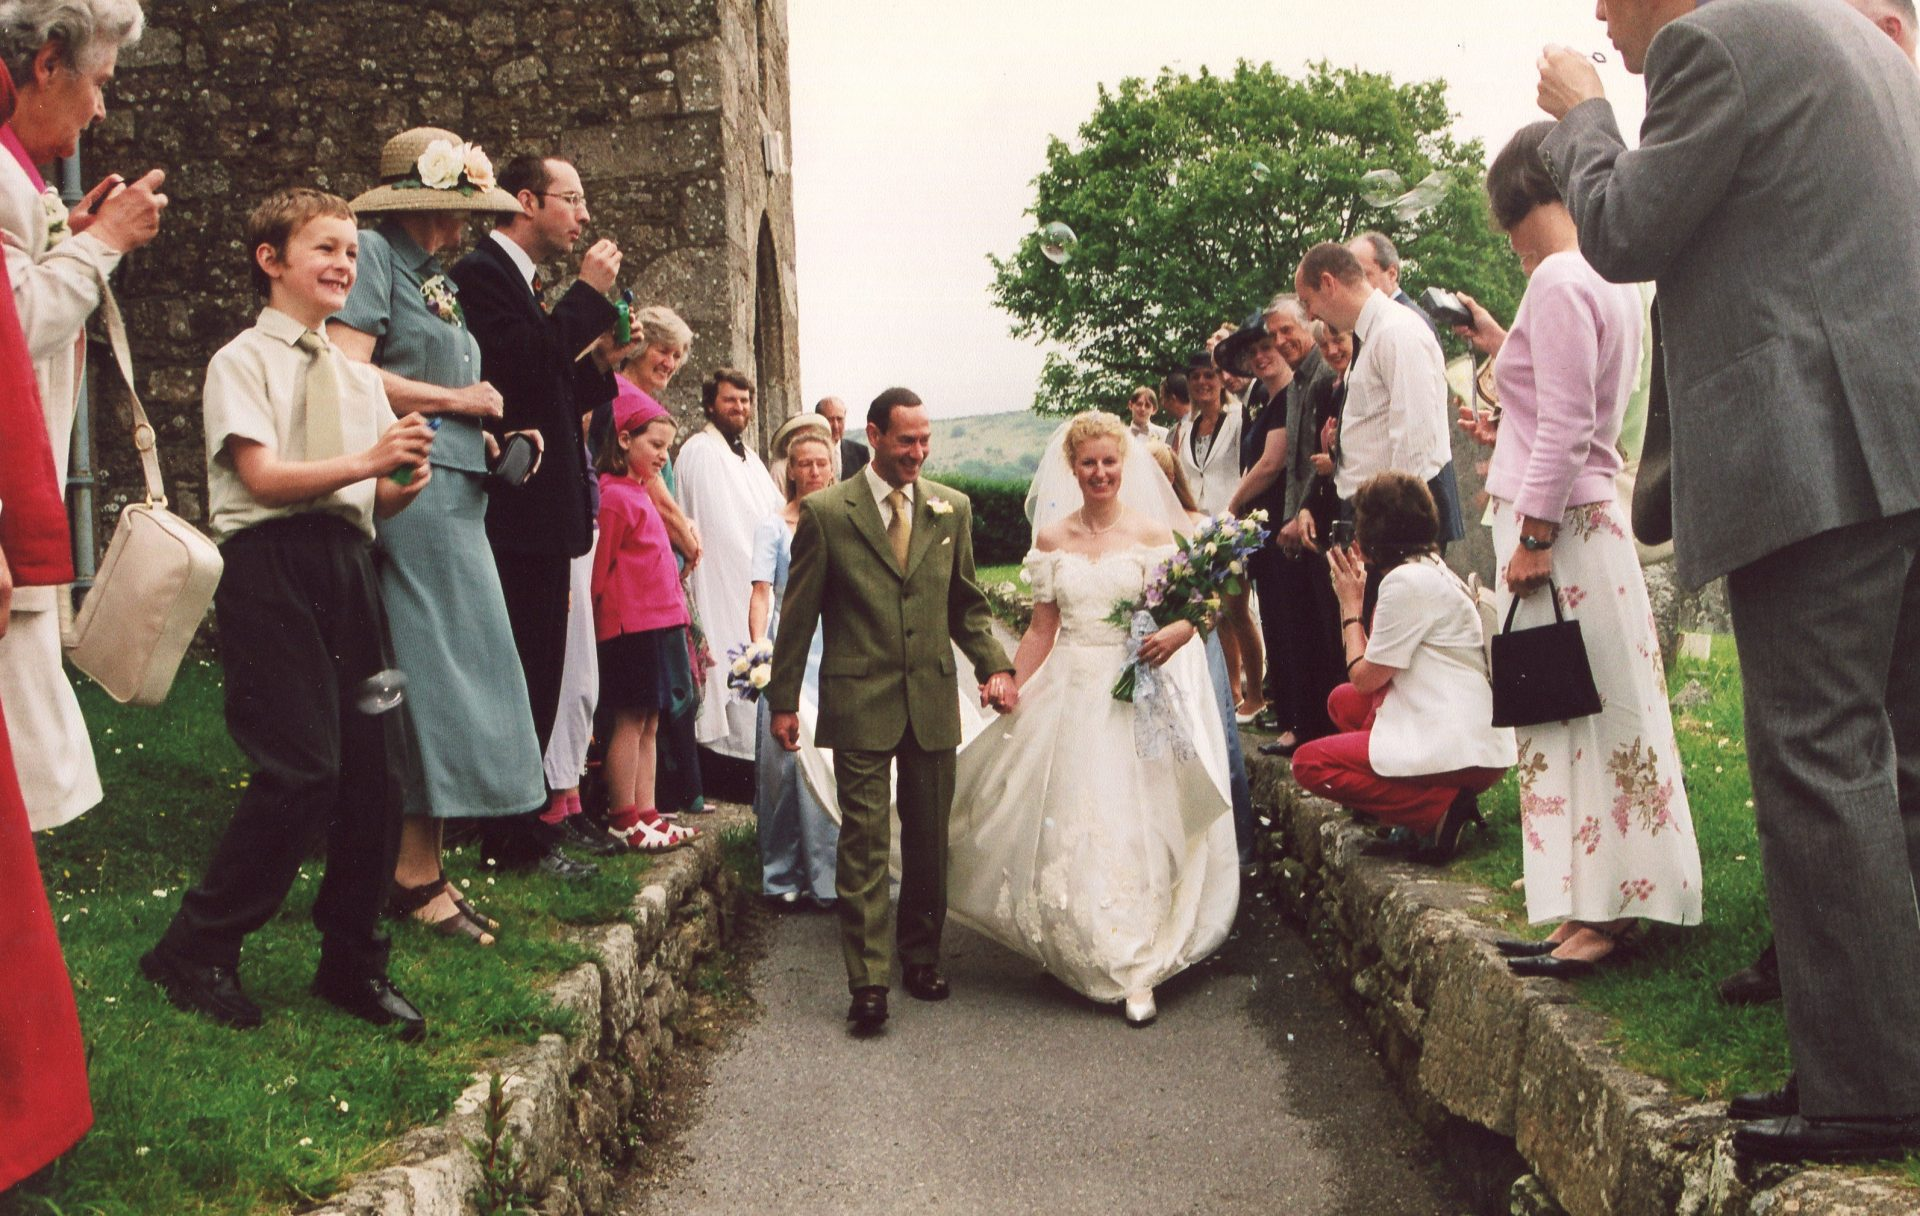 A Moretonhampstead wedding for Philippa and Graham. With the longest wedding veil ever.